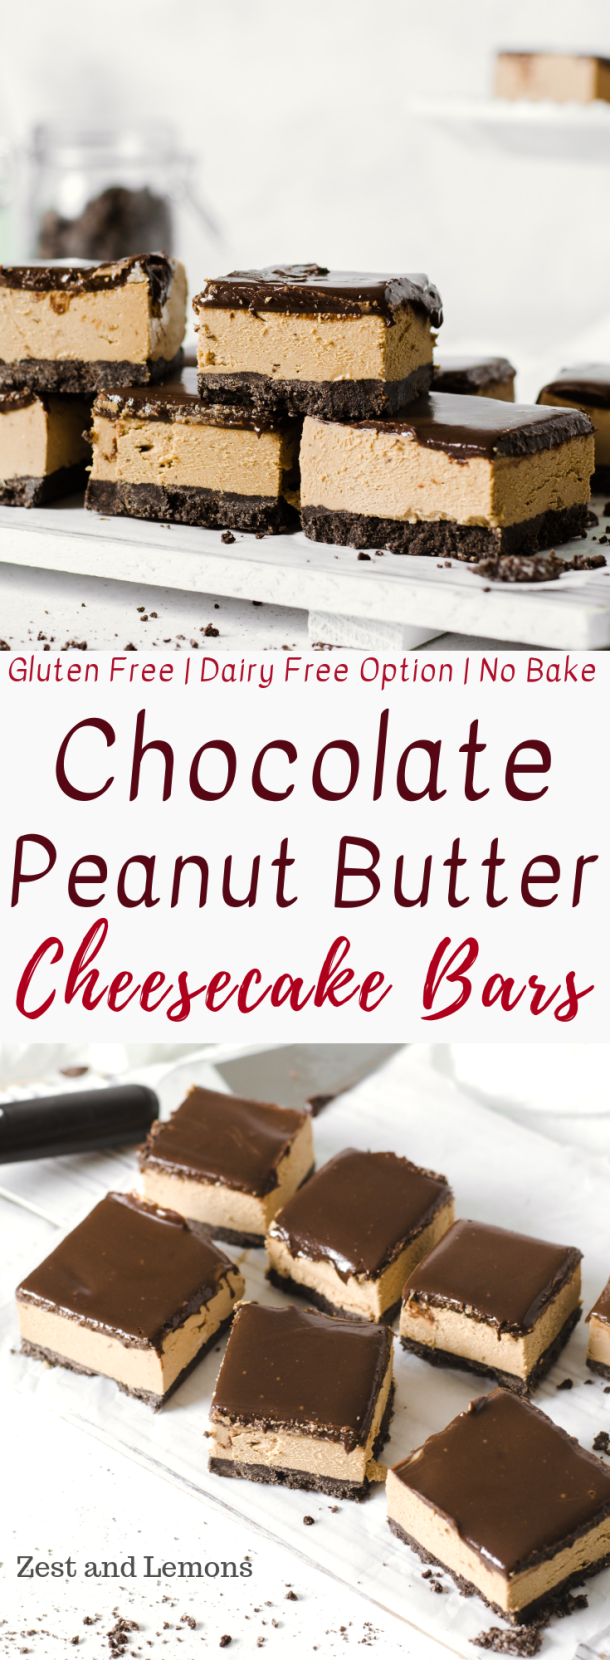 No-Bake Chocolate Peanut Butter Cheesecake Bars. Gluten free cheesecake bars with chocolate cookie crust, whipped peanut butter cheesecake filling, and creamy chocolate ganache on top - Zest and Lemons #glutenfree #cheesecakebars #peanutbutterbars #peanutbuttercheesecake #chocolatecheesecake #glutenfreedessert